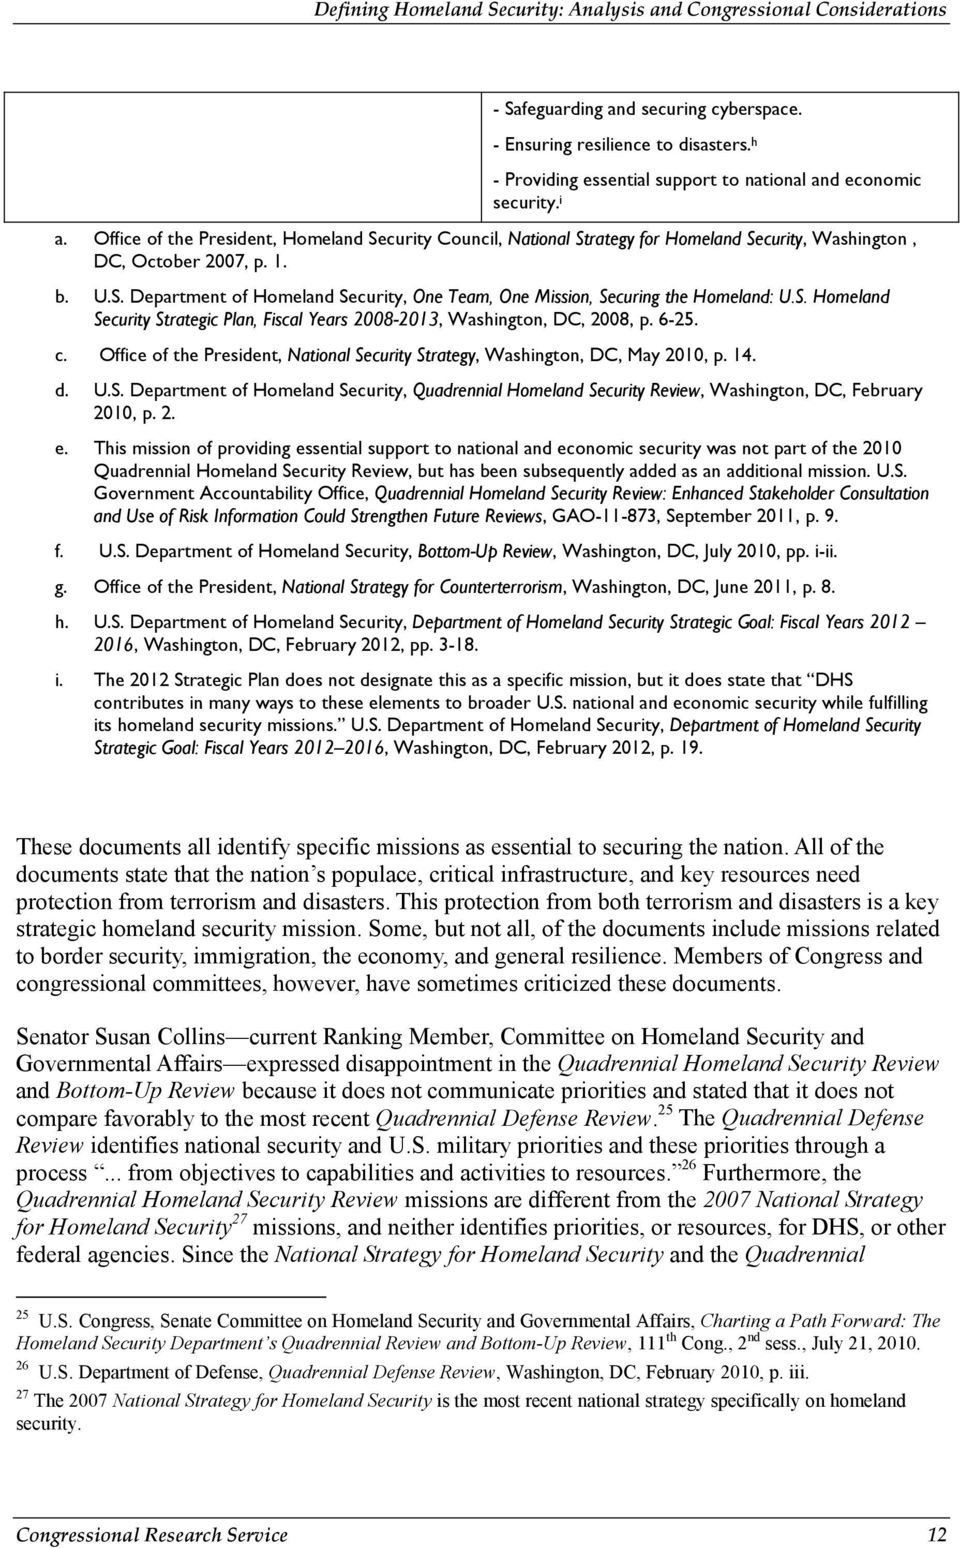 S. Homeland Security Strategic Plan, Fiscal Years 2008-2013, Washington, DC, 2008, p. 6-25. c. Office of the President, National Security Strategy, Washington, DC, May 2010, p. 14. d. U.S. Department of Homeland Security, Quadrennial Homeland Security Review, Washington, DC, February 2010, p.